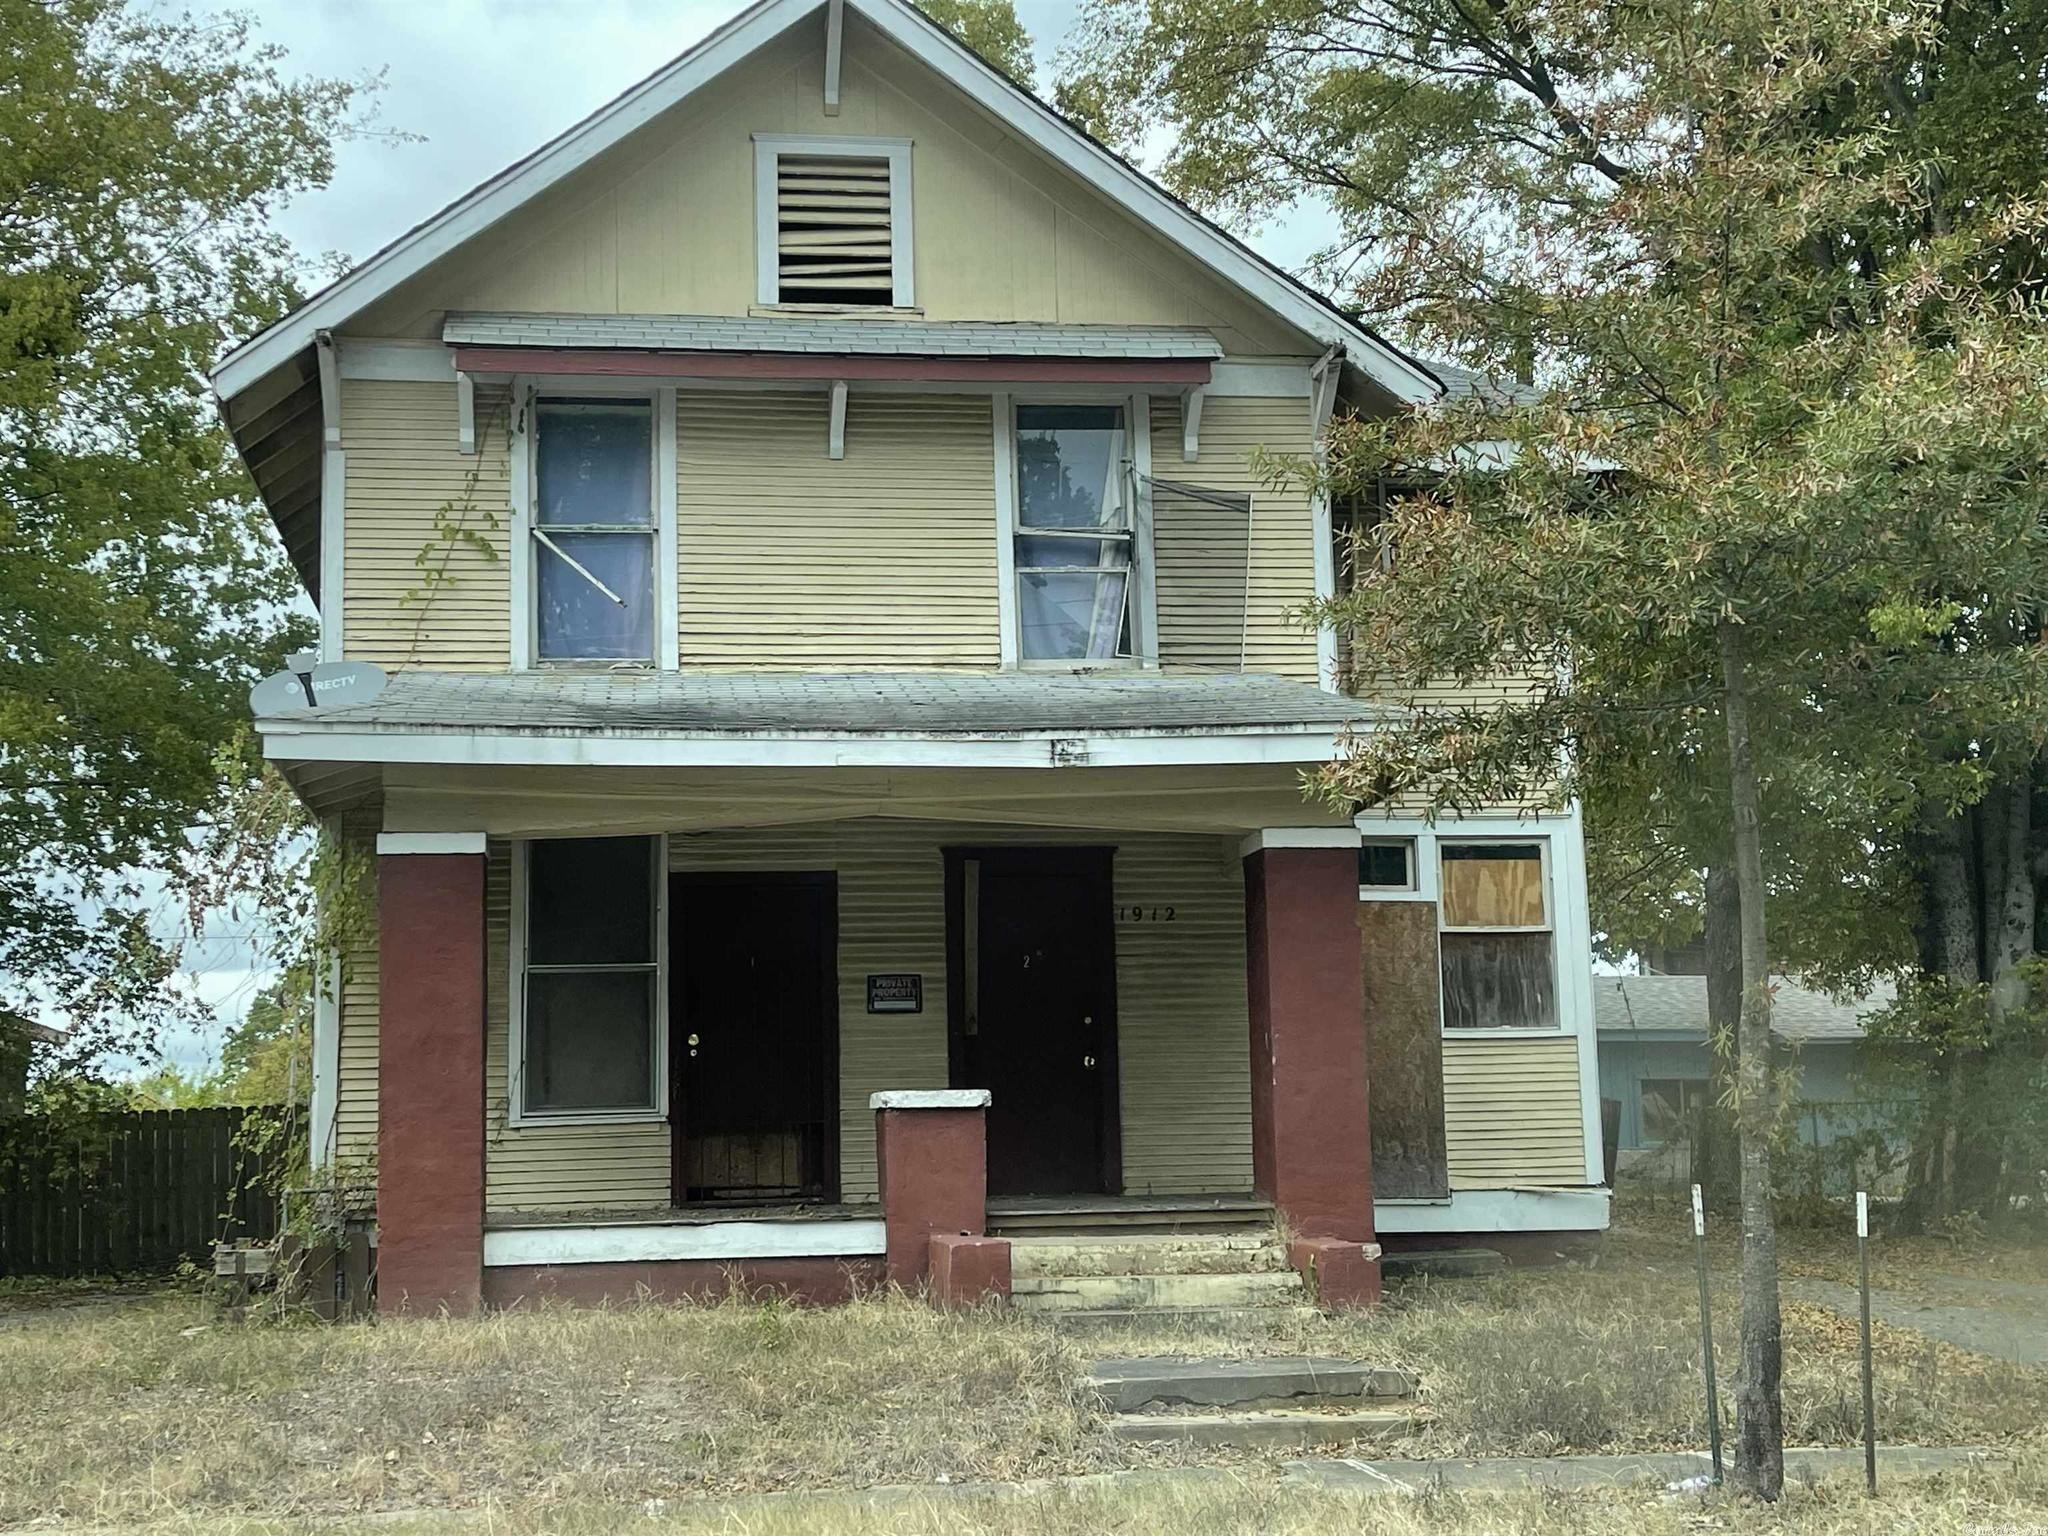 3-Bedroom House In Central High